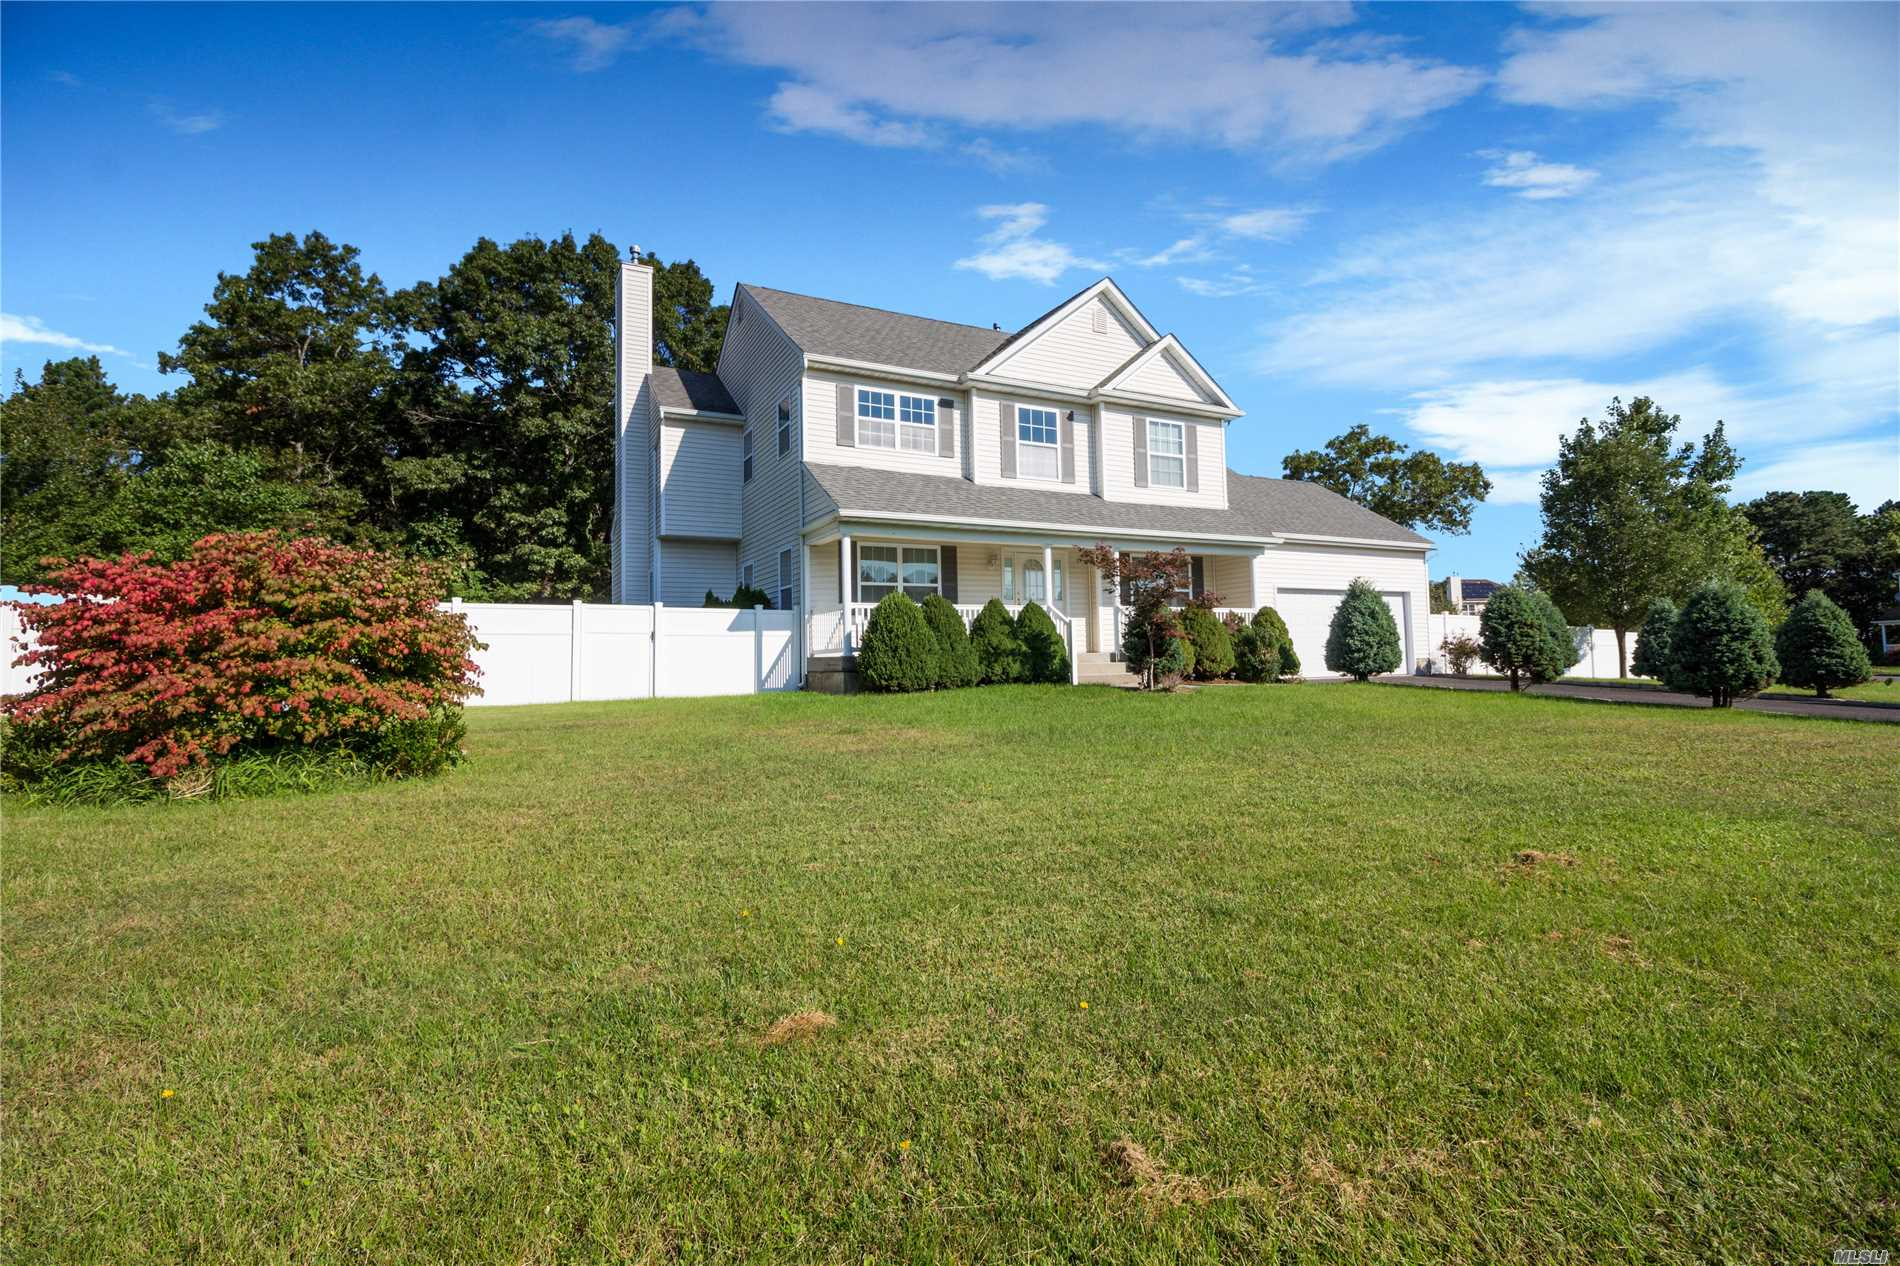 Beautiful Newer Construction Colonial! The First Floor Features A Two-Story Entry & Living Room, Formal Dining Room, Spacious Eat-In Kitchen & Family Room. 1st Floor Laundry Room. Upstairs Is The Master Suite With Attached Full Bath (Stand Up Shower And Bathtub), 2 Additional Bedrooms & A Full Bathroom. Full Unfinished Basement W/ 8-Ft Ceilings. Hardwood Flooring Throughout Except In Bathrooms. Fully Fenced Yard & Large Patio. 2-Unit Central Ac.